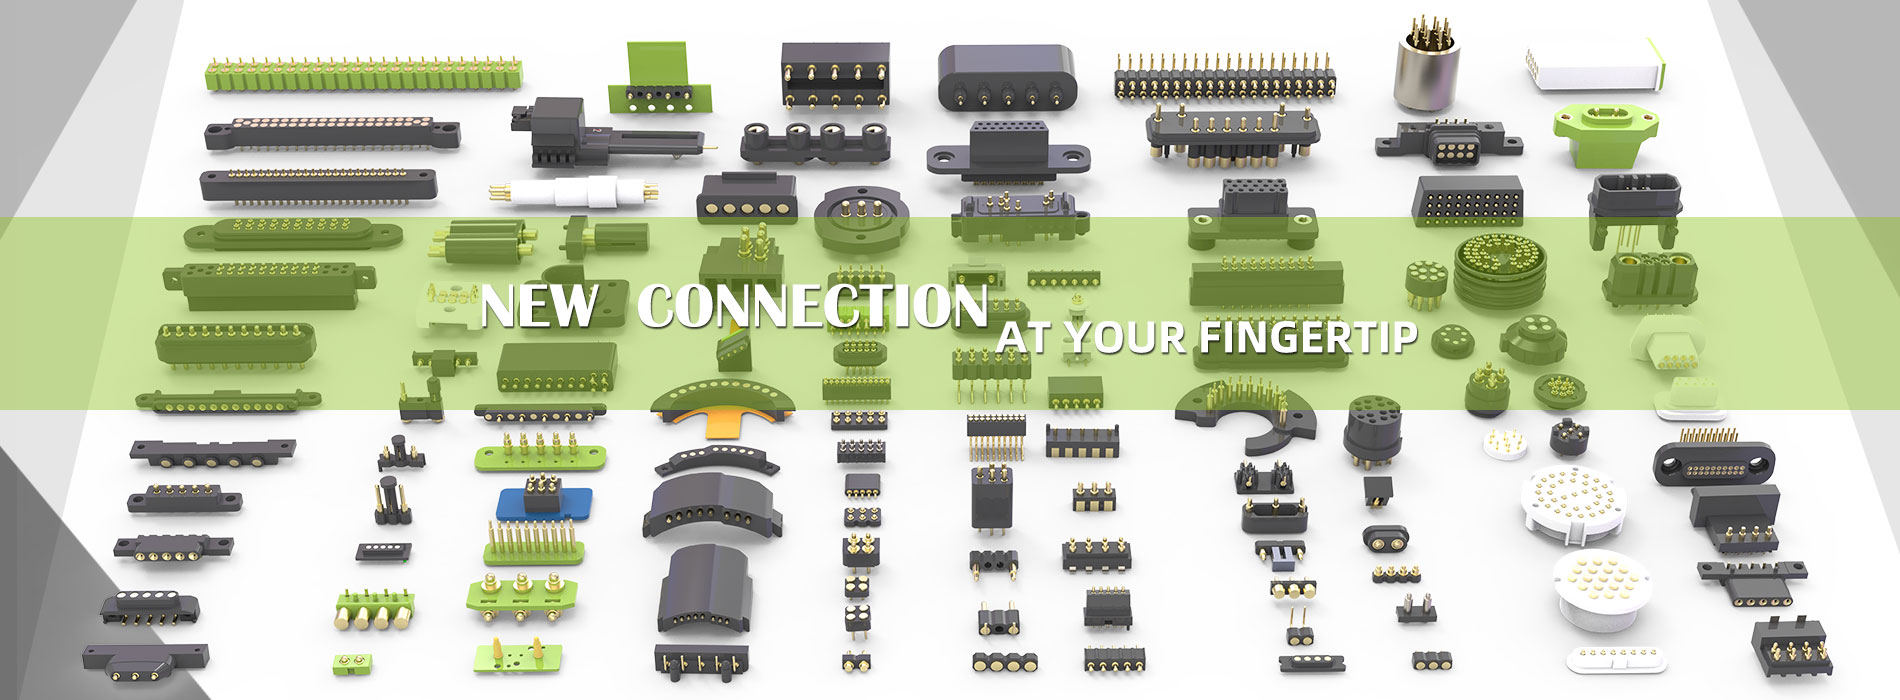 pogo pin connector|spring loaded connectors